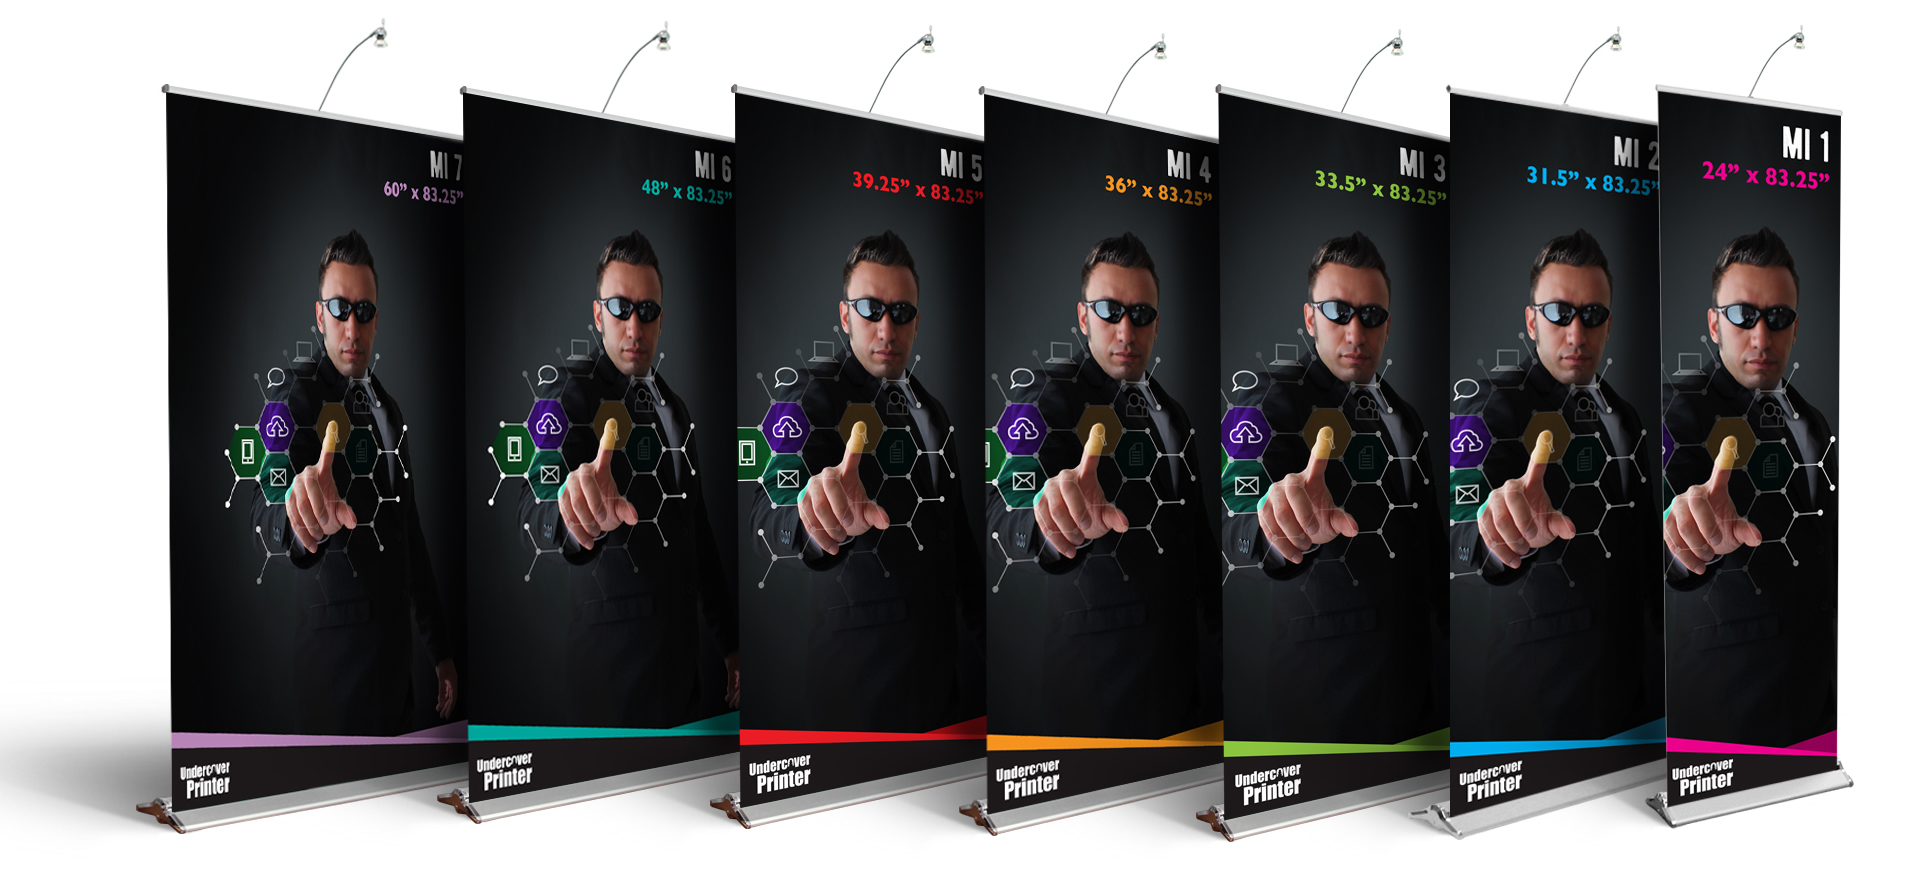 Pull up- banner stand- Pull up banner stands- MI- trade show- display- local- VA- Undercover Printer